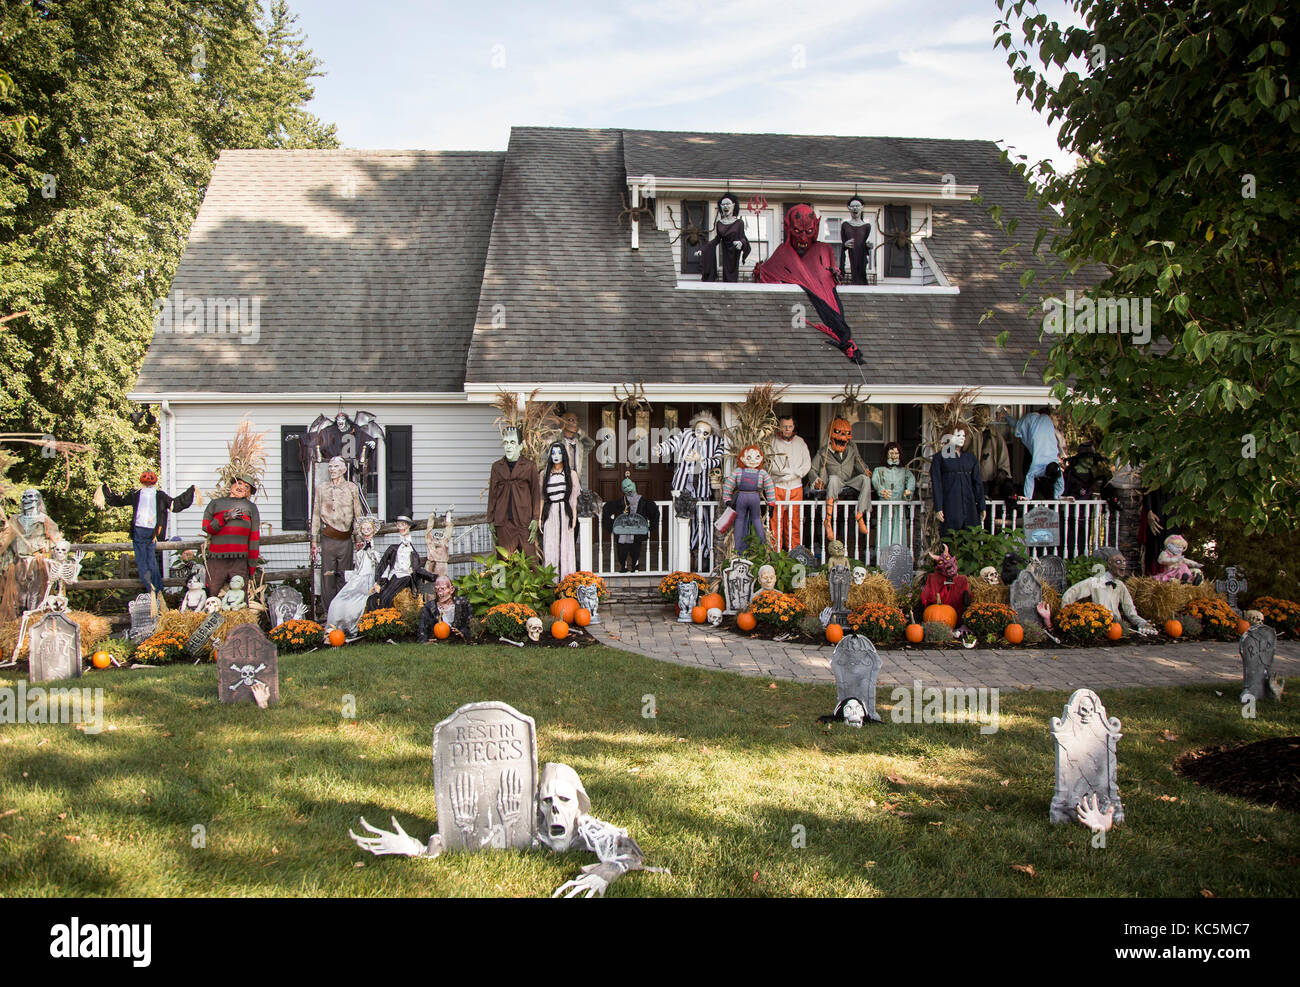 Halloween Decorations In Front Of A House In Ramsey New Jersey